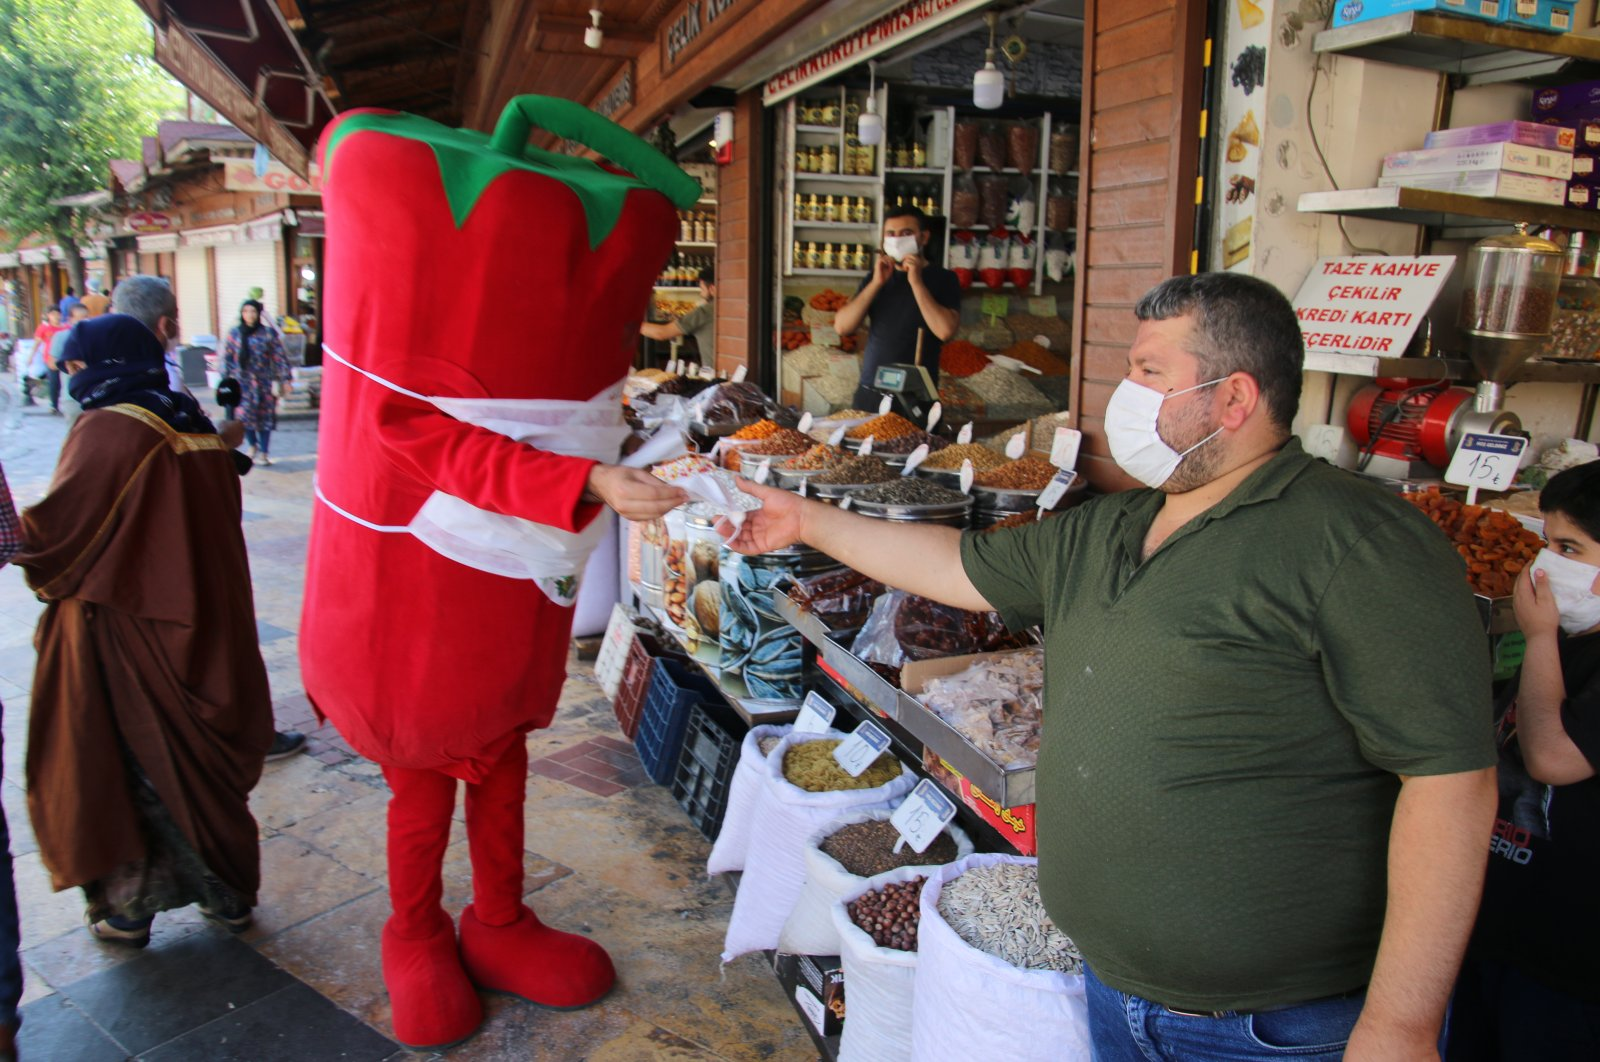 Dressed up as giant isot peppers, mascots distribute free masks to businesses and shop owners in Şanlıurfa, July 13, 2020. (AA Photo)